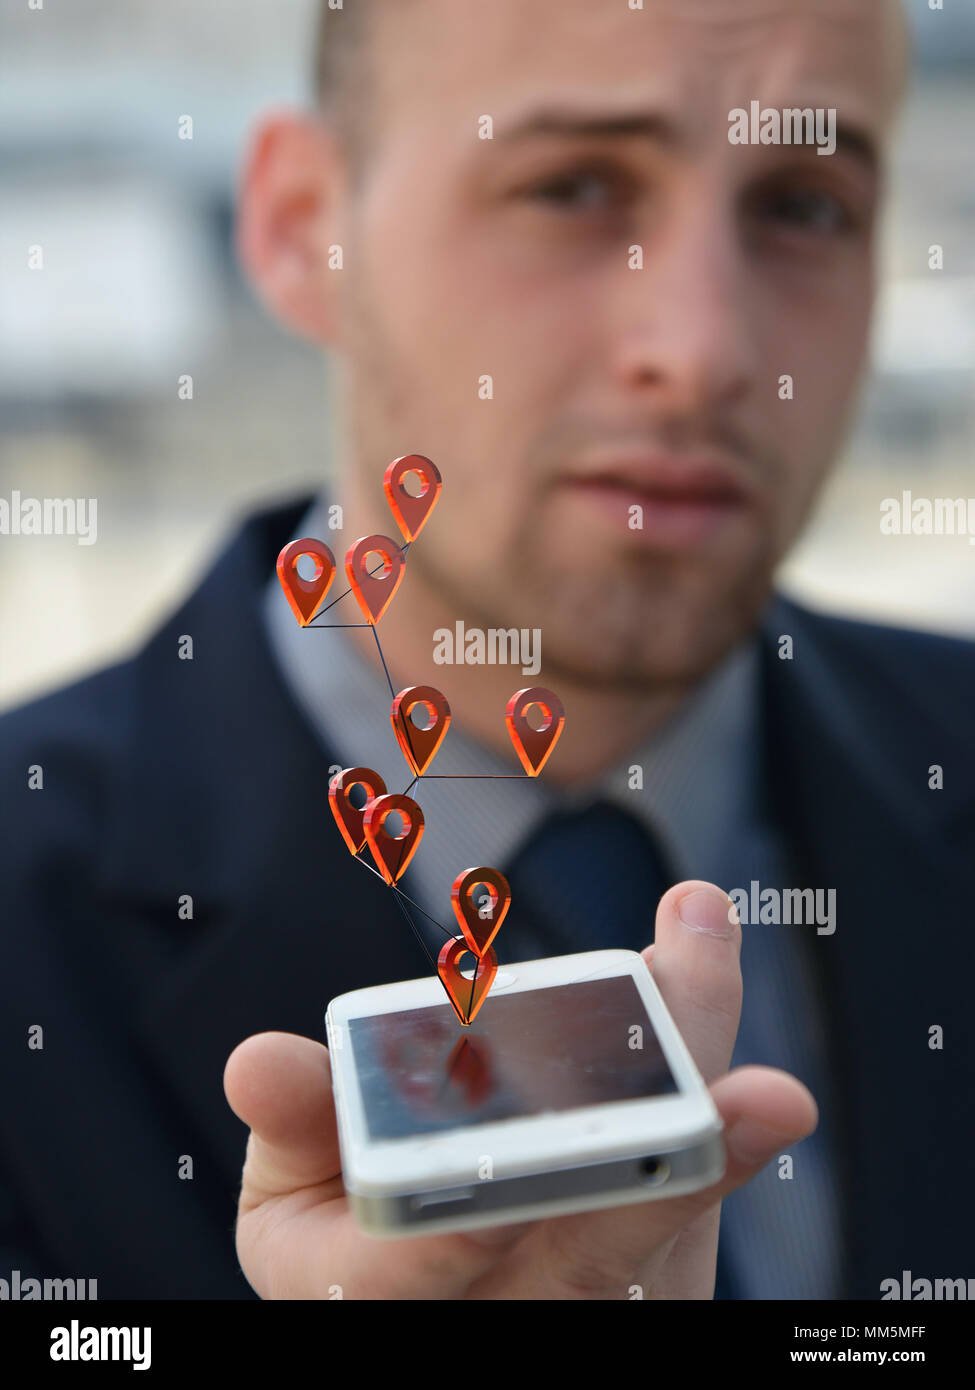 man using geotags on smartphone - Stock Image